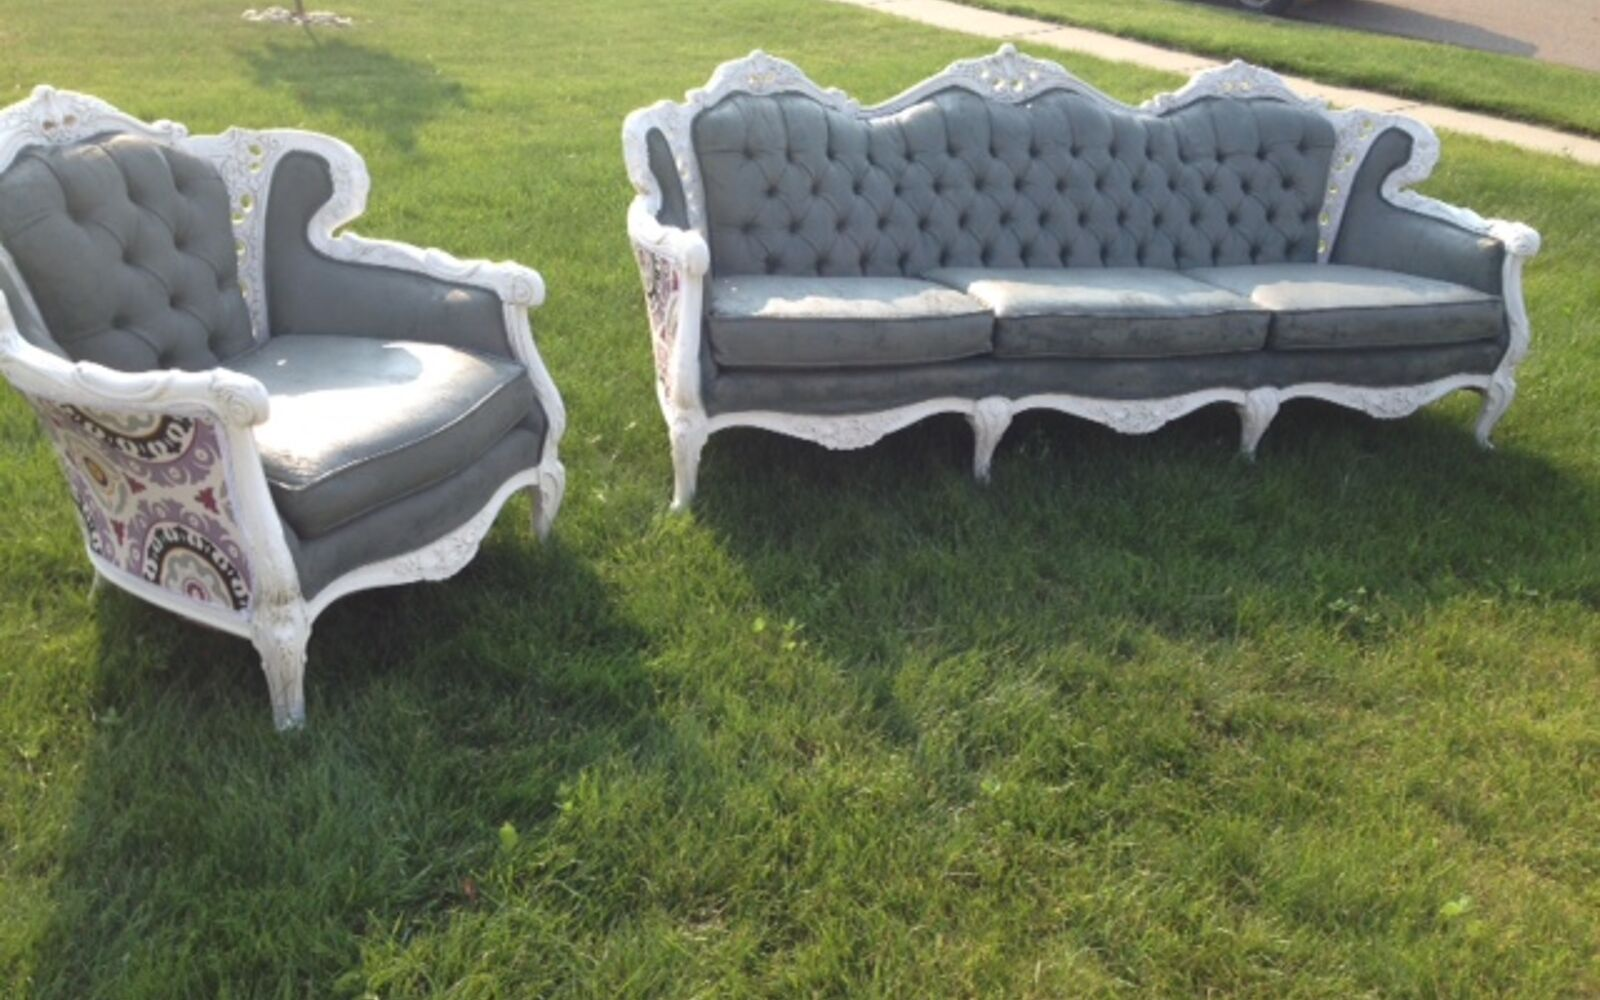 s hide your couch s wear and tear with these great ideas, Painting an antique couch and chair set